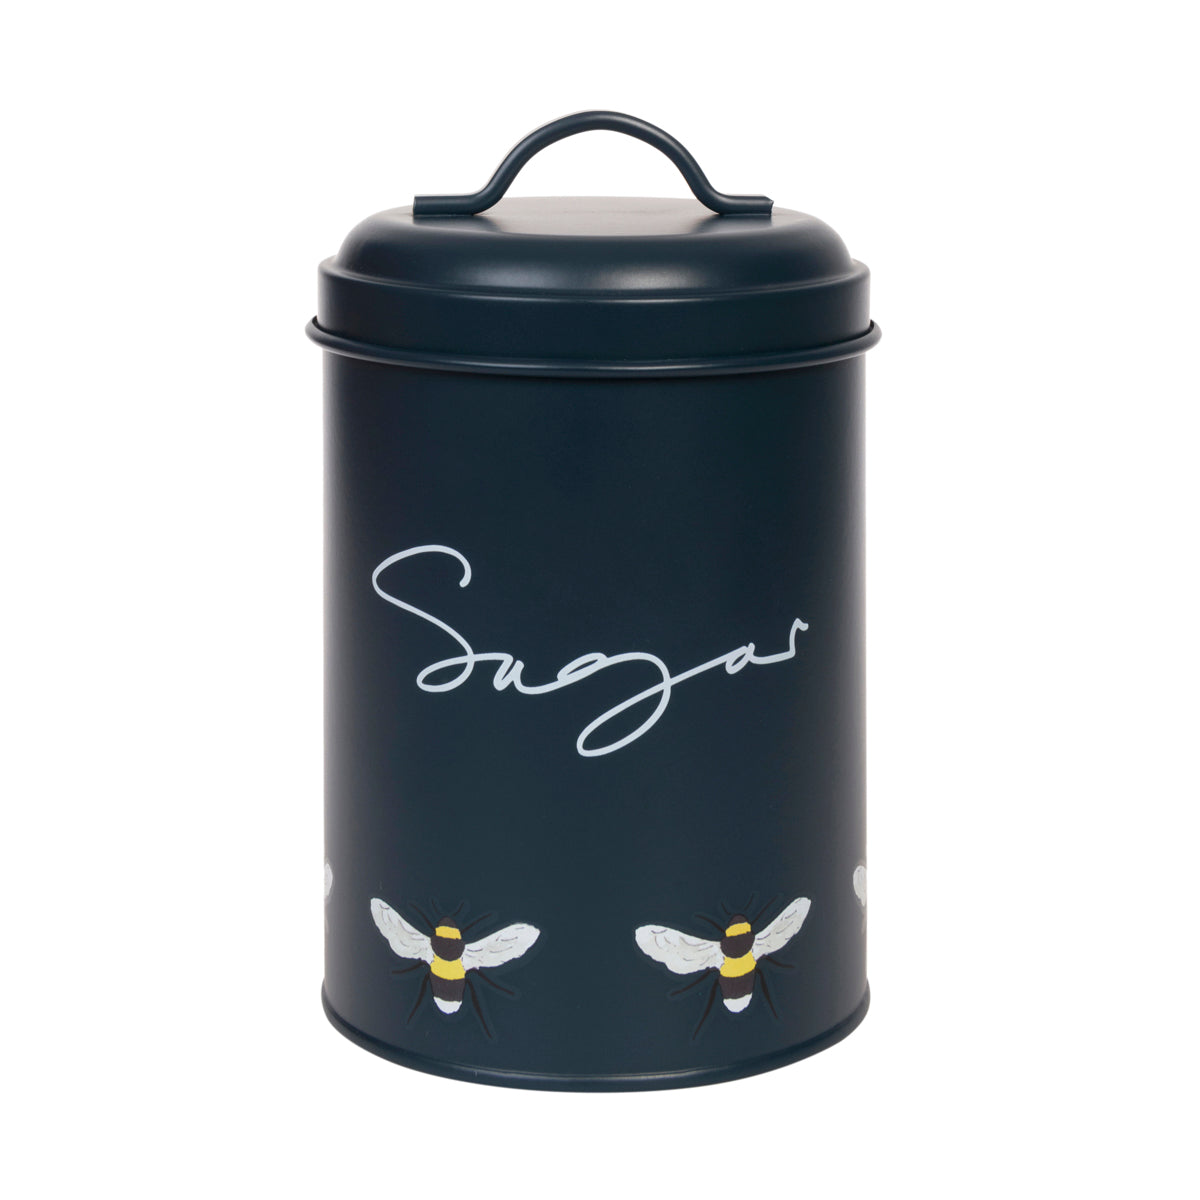 Made from galvanised steel with a navy background, this sugar tin is part of Sophie Allport's Bees Collection.